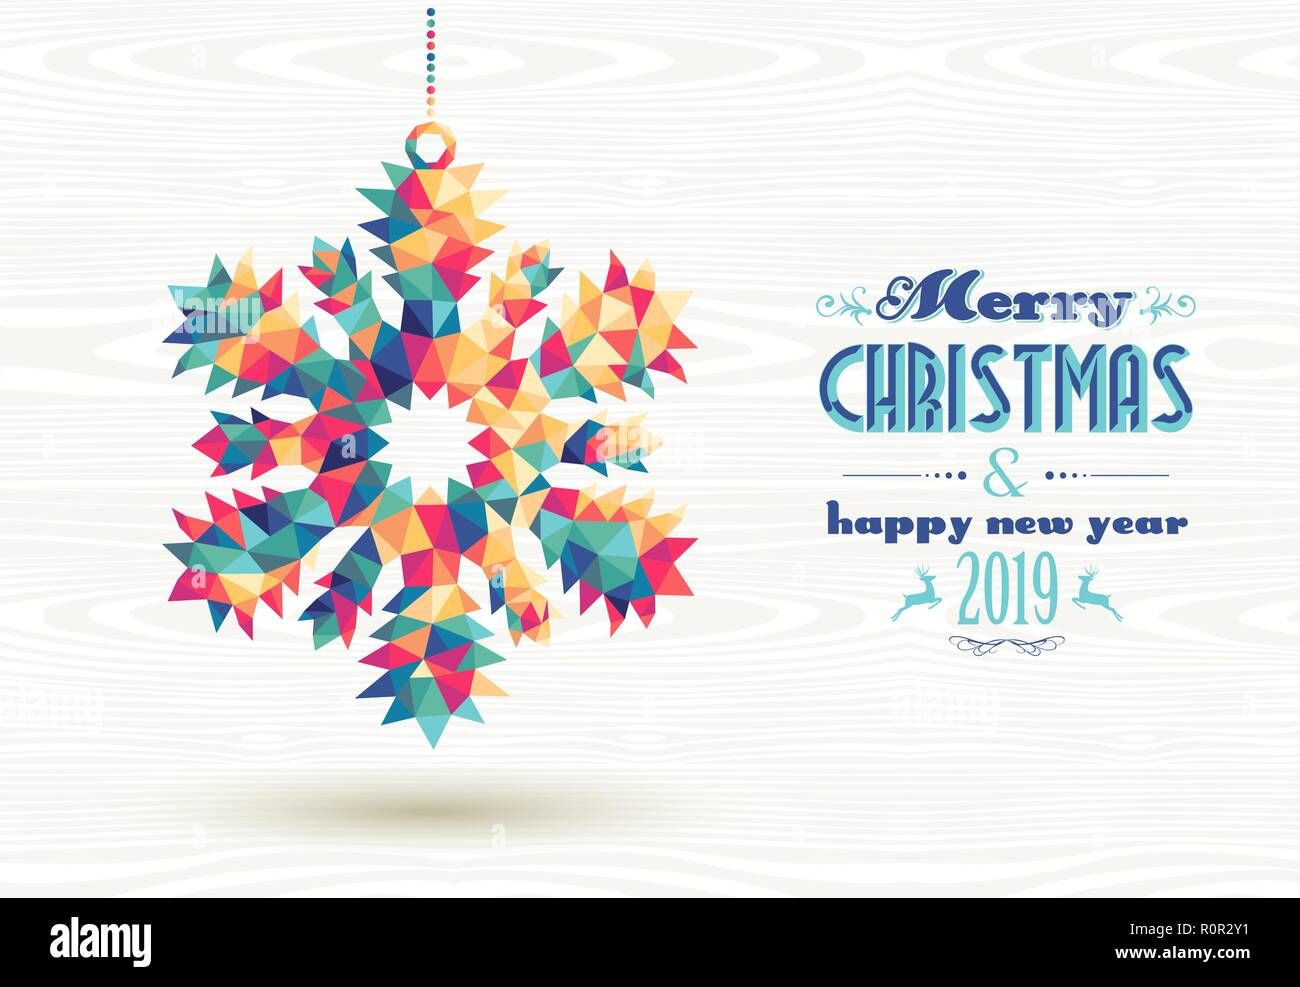 merry christmas and happy new year 2019 retro snowflake made with colorful hipster triangles background ideal for holiday greeting card poster or we